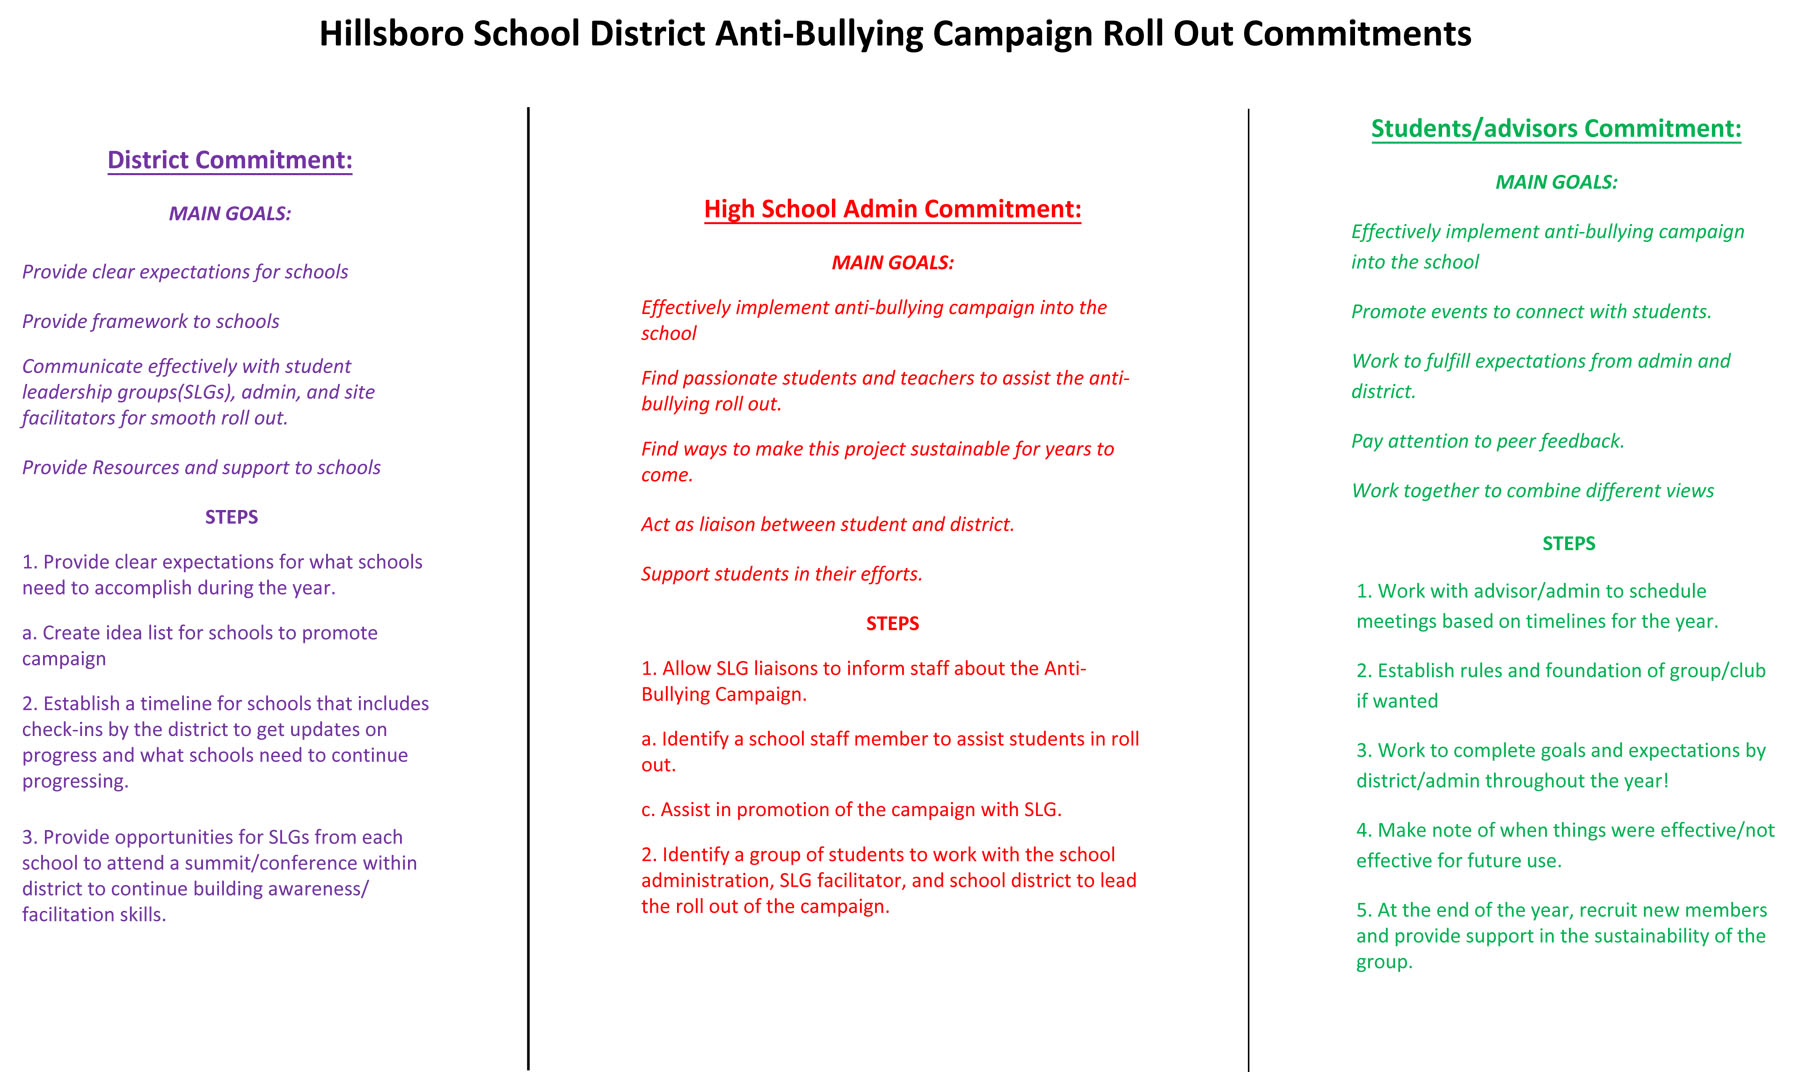 2015-16 Anti-Bullying Campaign Roll-Out Commitments